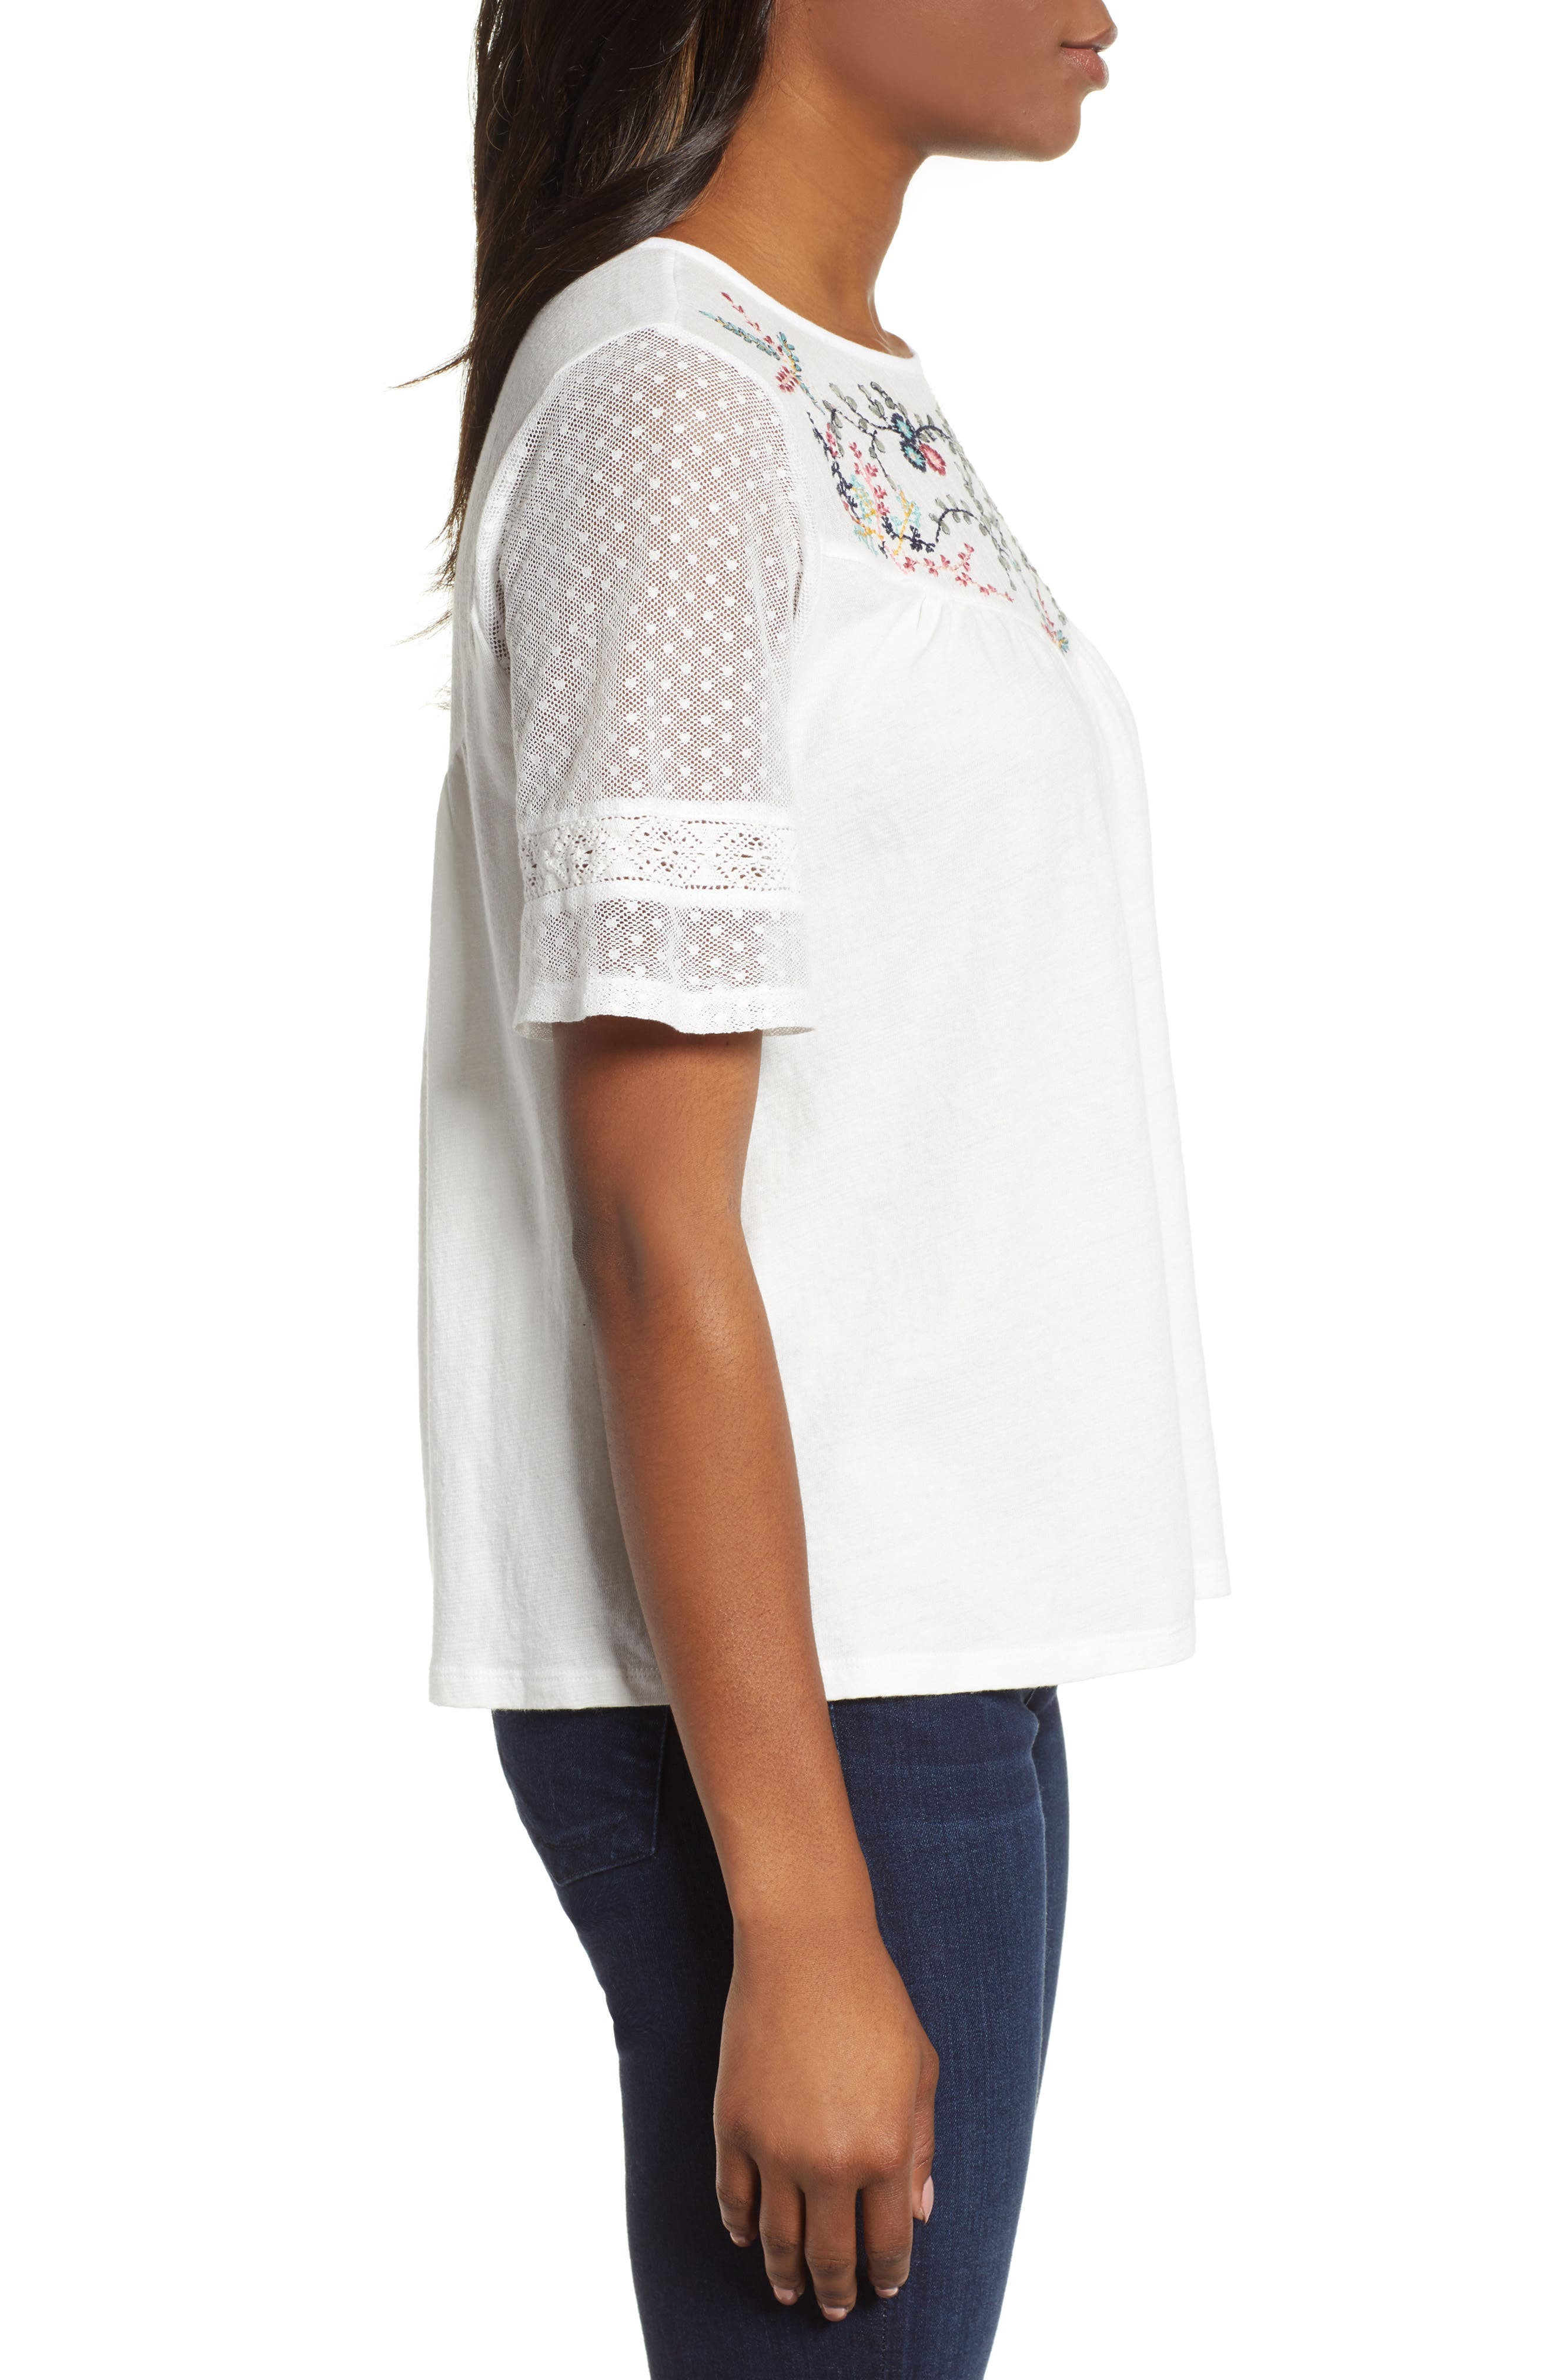 LUCKY BRAND,                             Embroidered Yoke Peasant Top,                             Alternate thumbnail 3, color,                             LUCKY WHITE